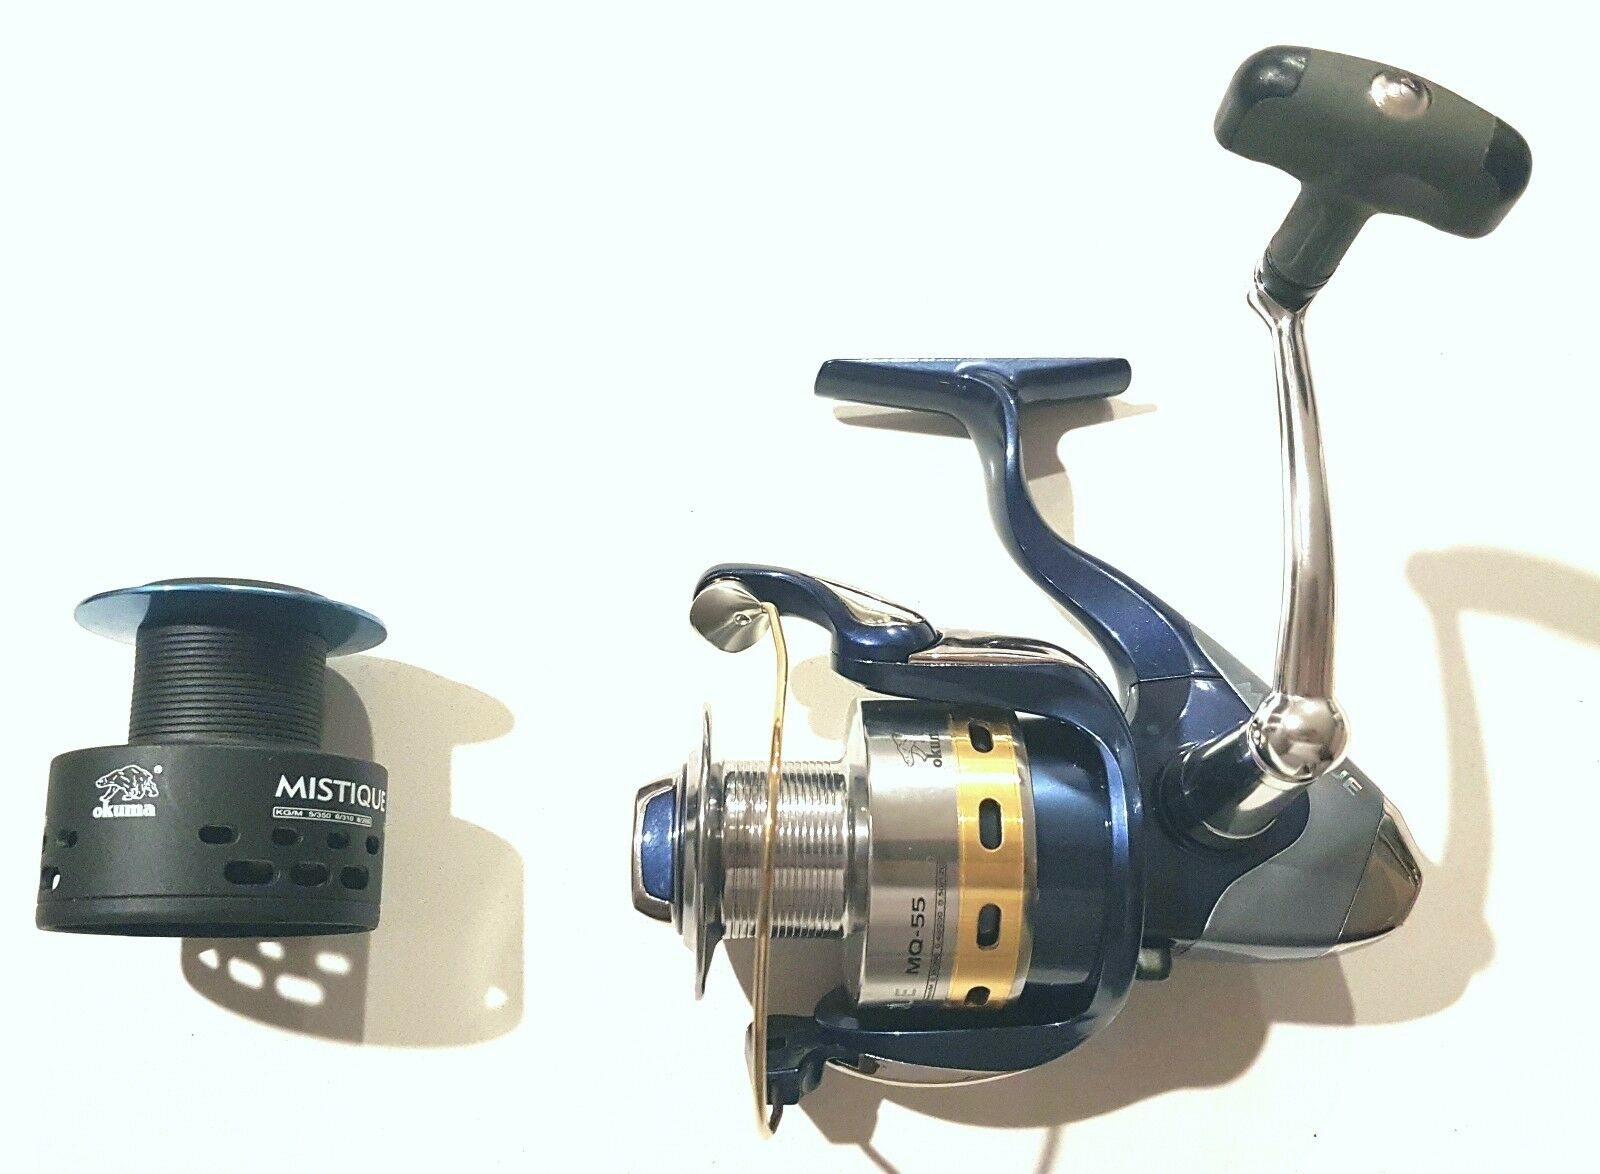 OKUMA MISTIQUE MQ-45 SPINNING REEL TEMPORARY PRICE REDUCTION FROM  75